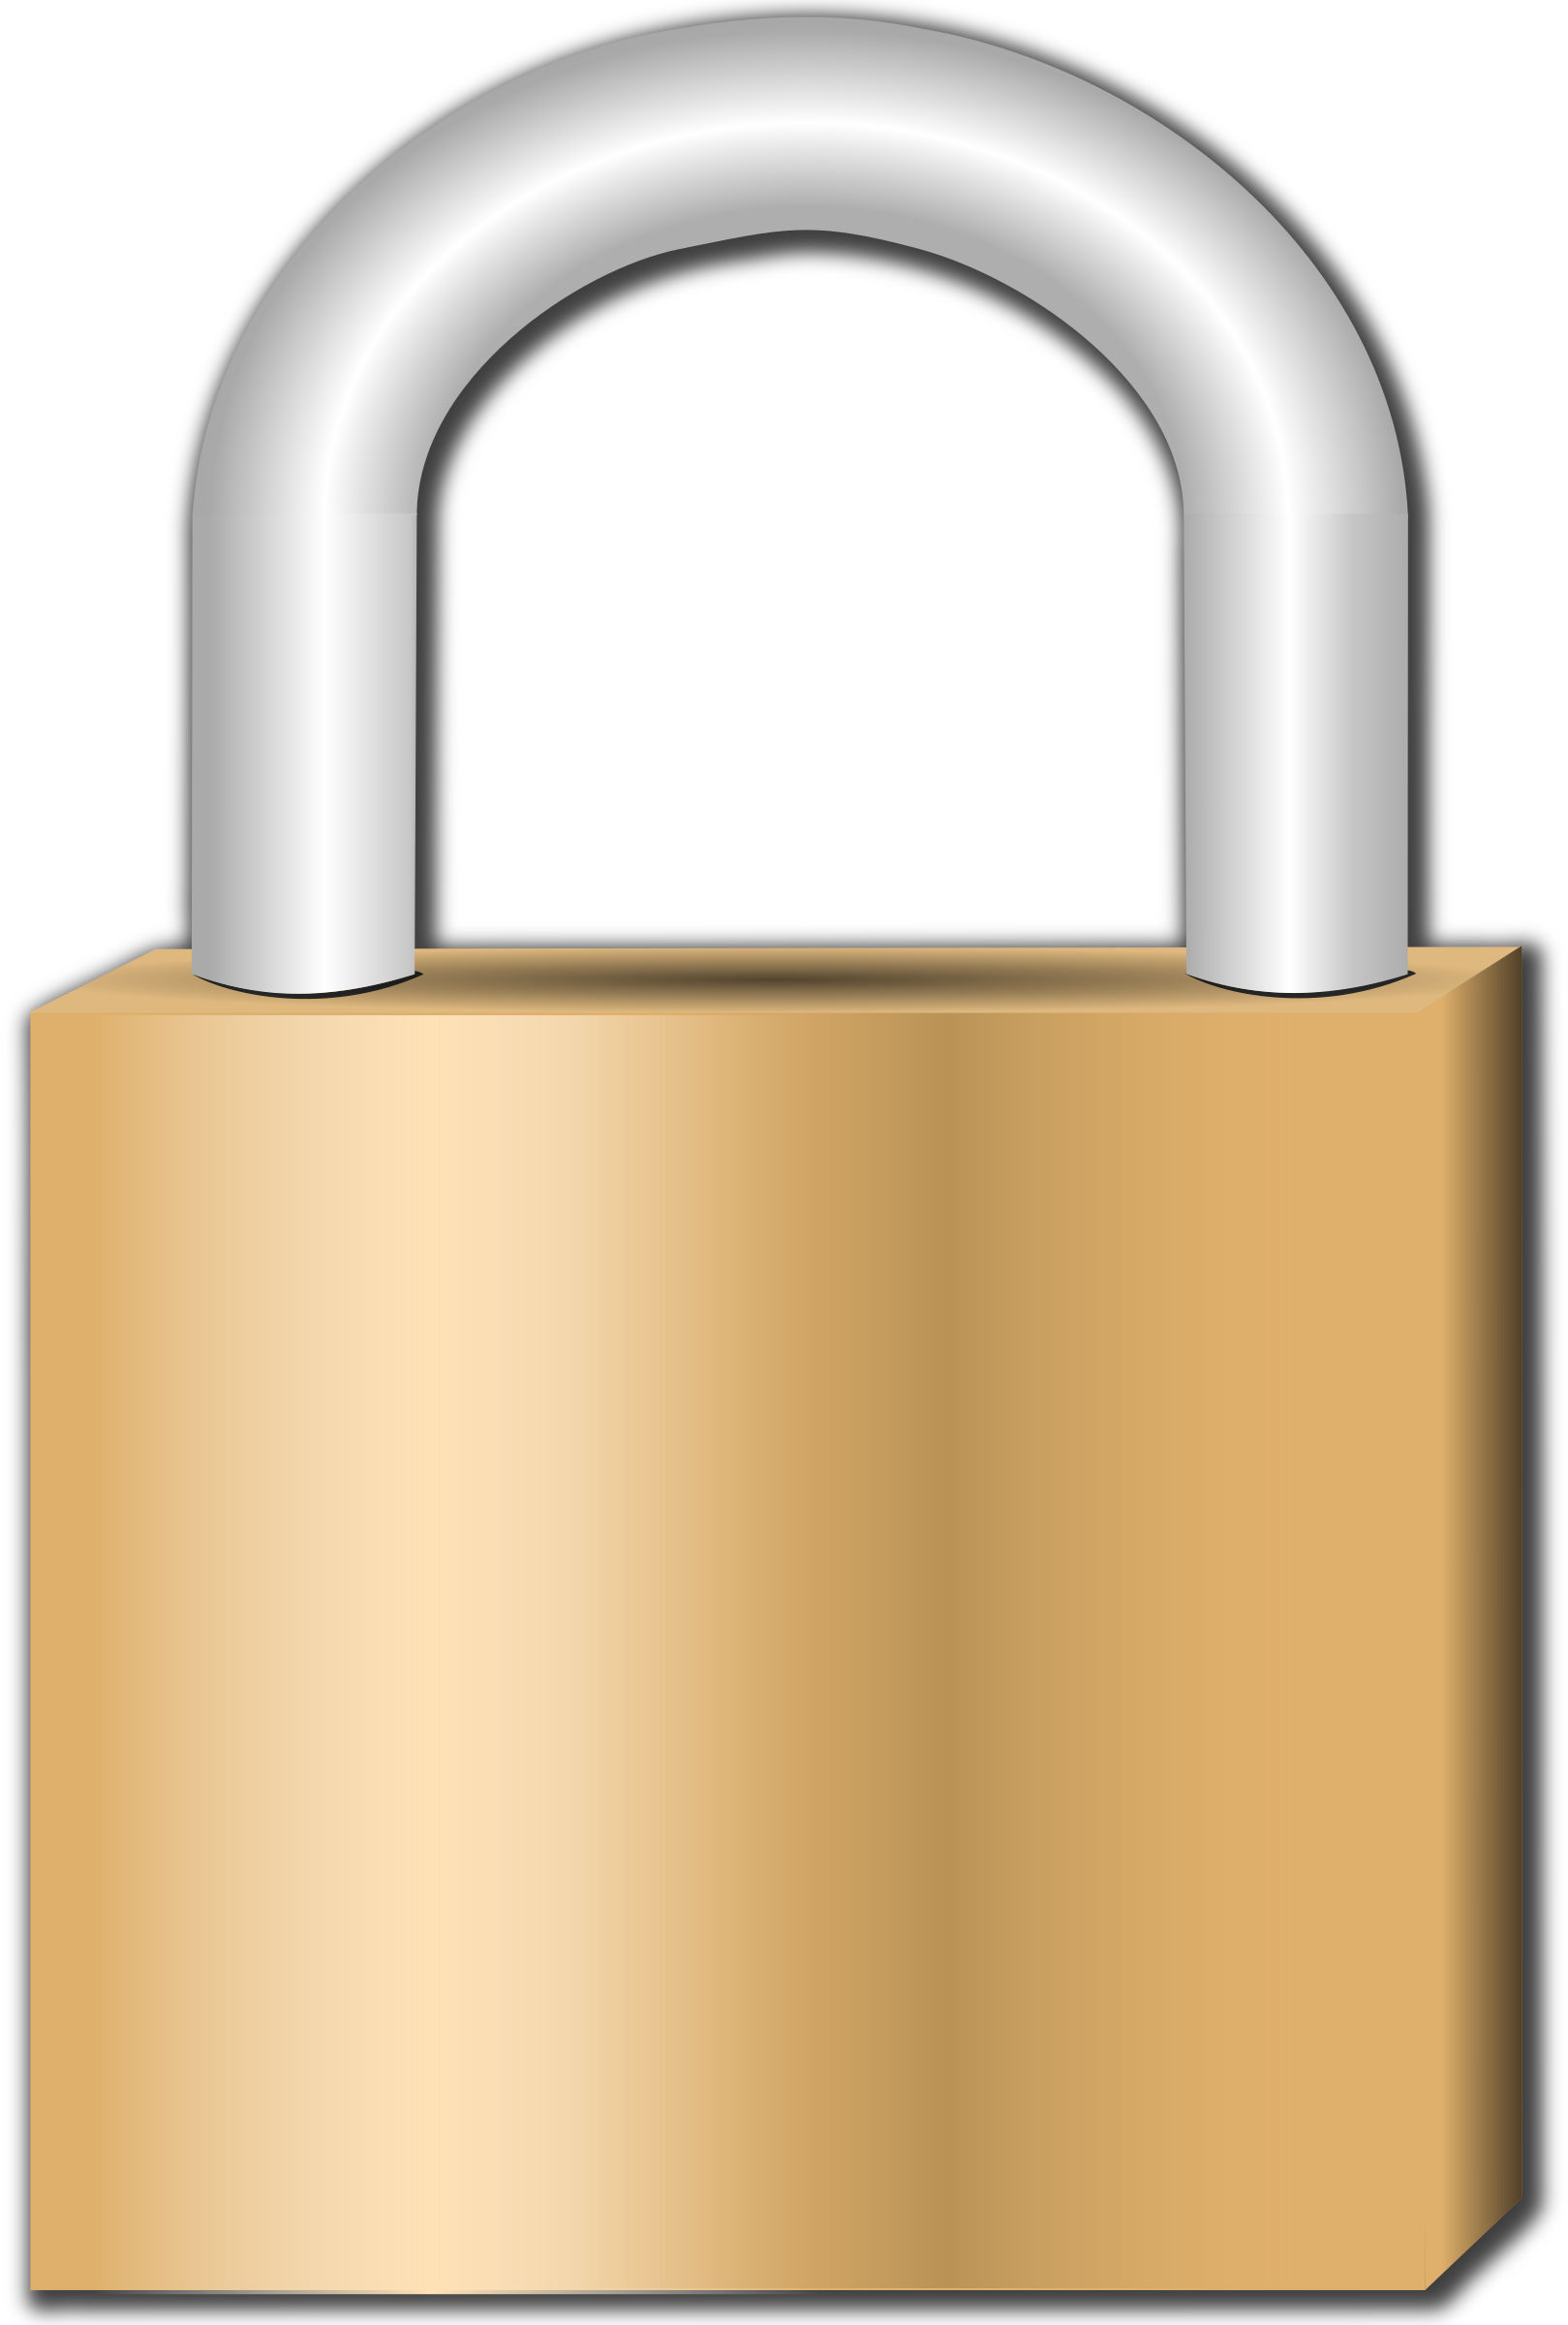 gold keyhole clipart - HD1619×2400